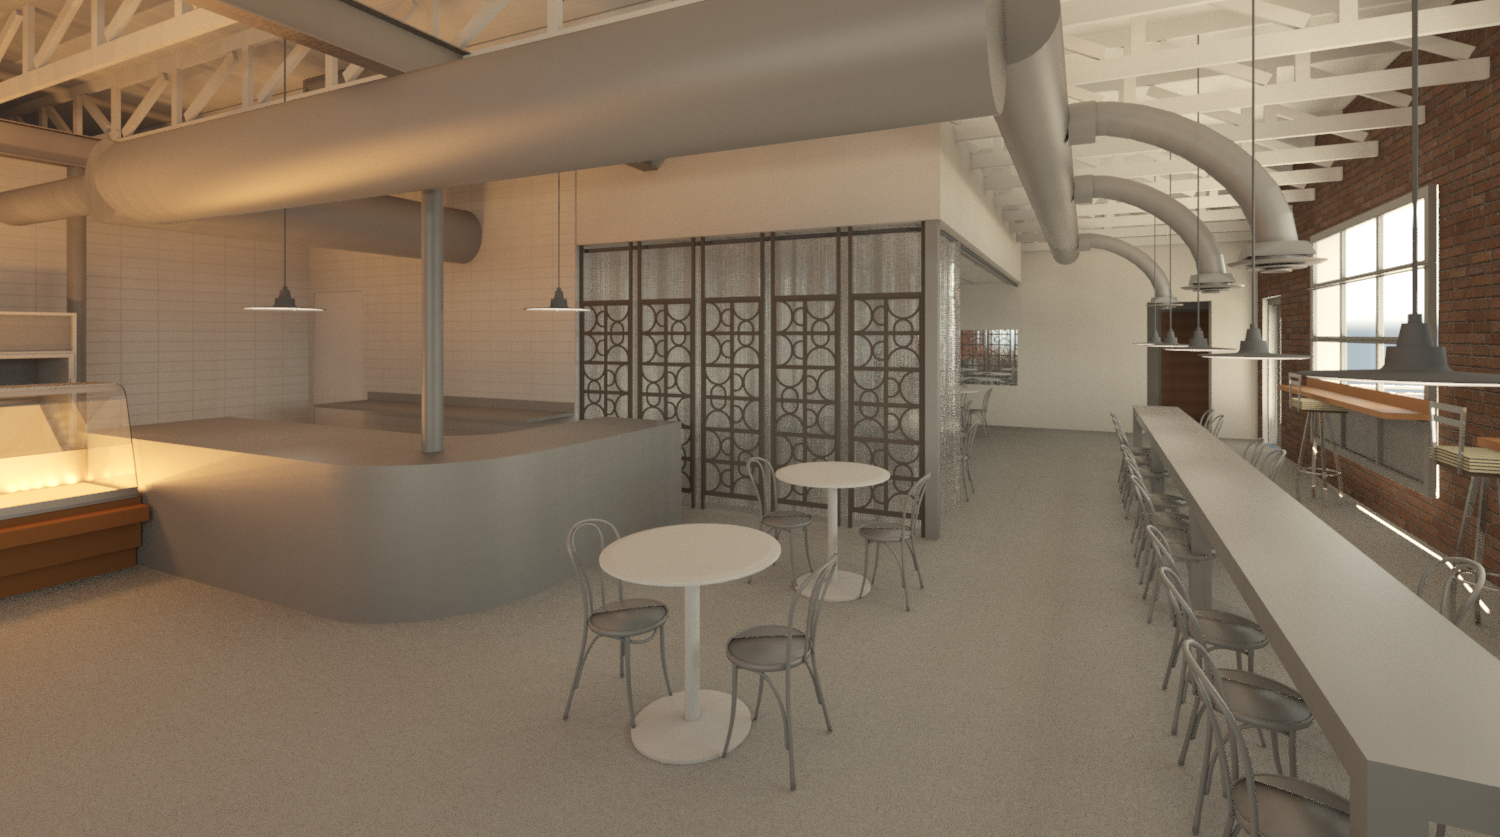 Early virtual 3D rendering looking at community table placement, decorative panels and curved counter area.